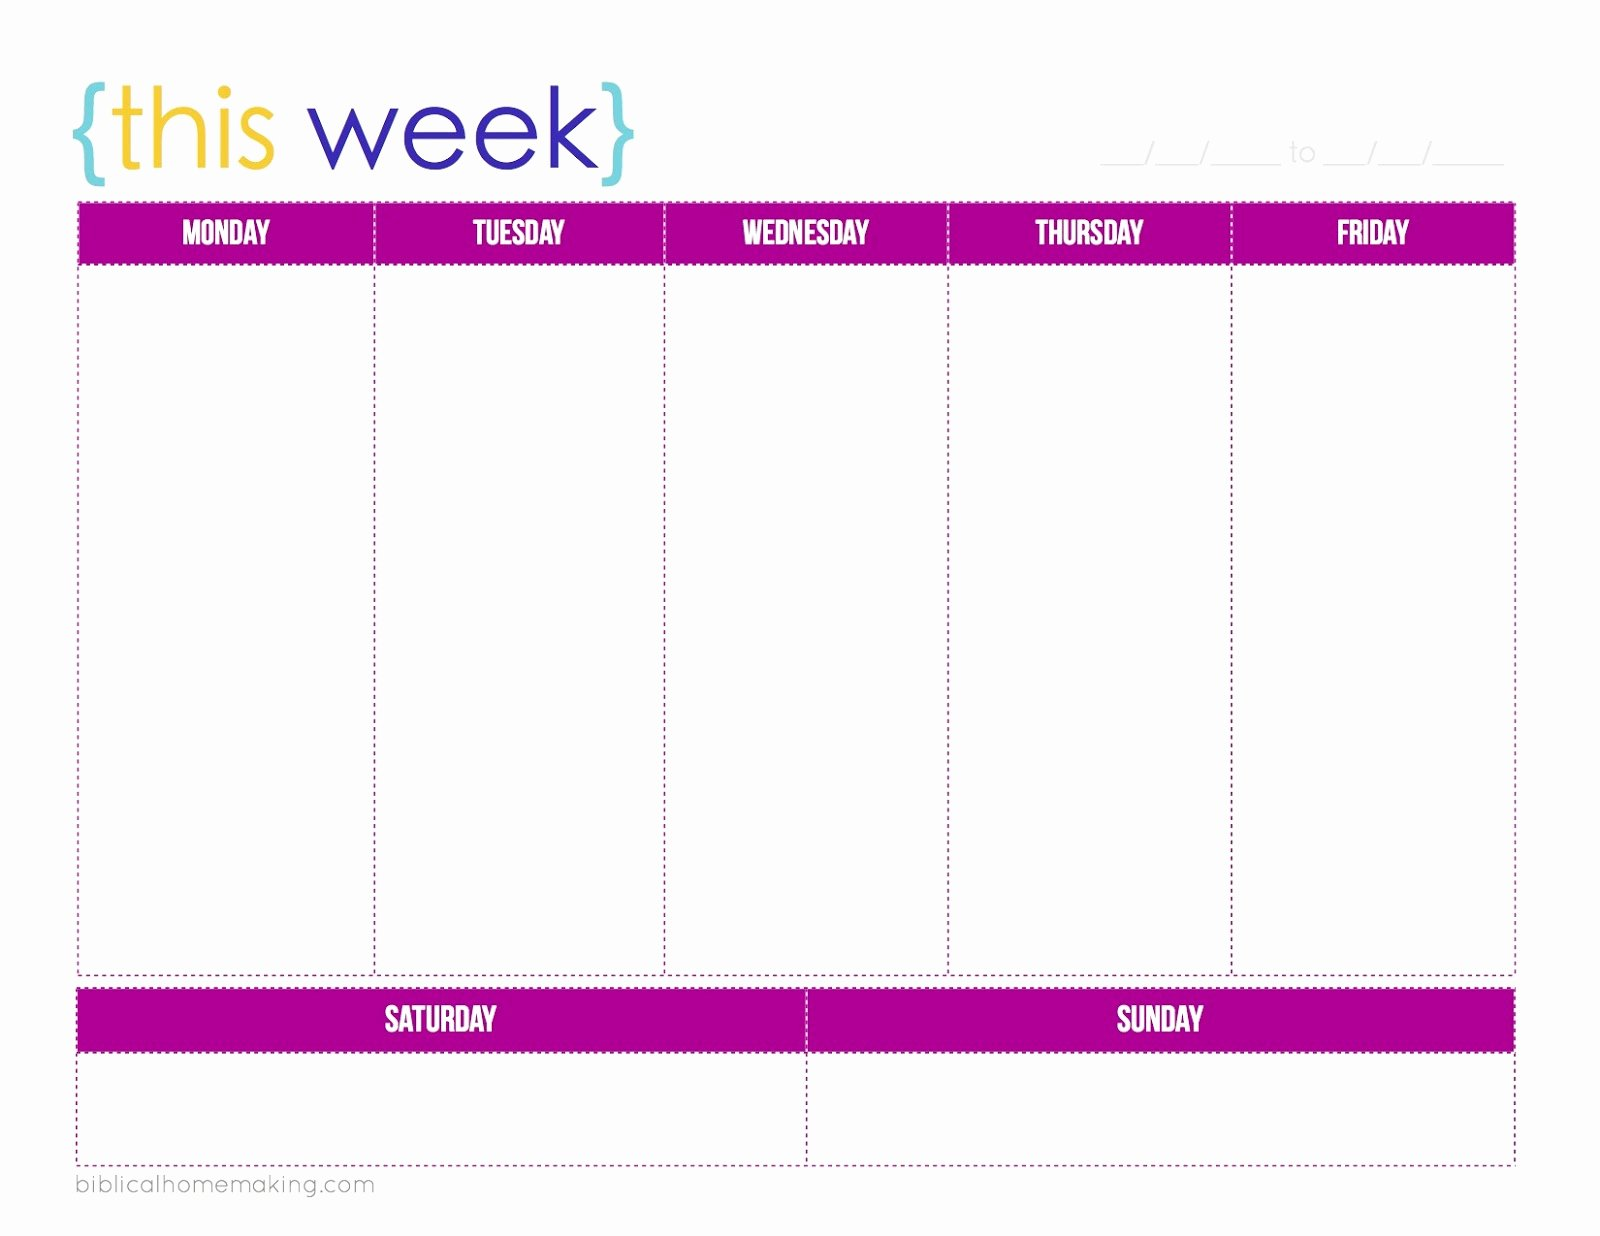 Monday to Friday Schedule Template Luxury April Calendar 2016 Template Monday Friday